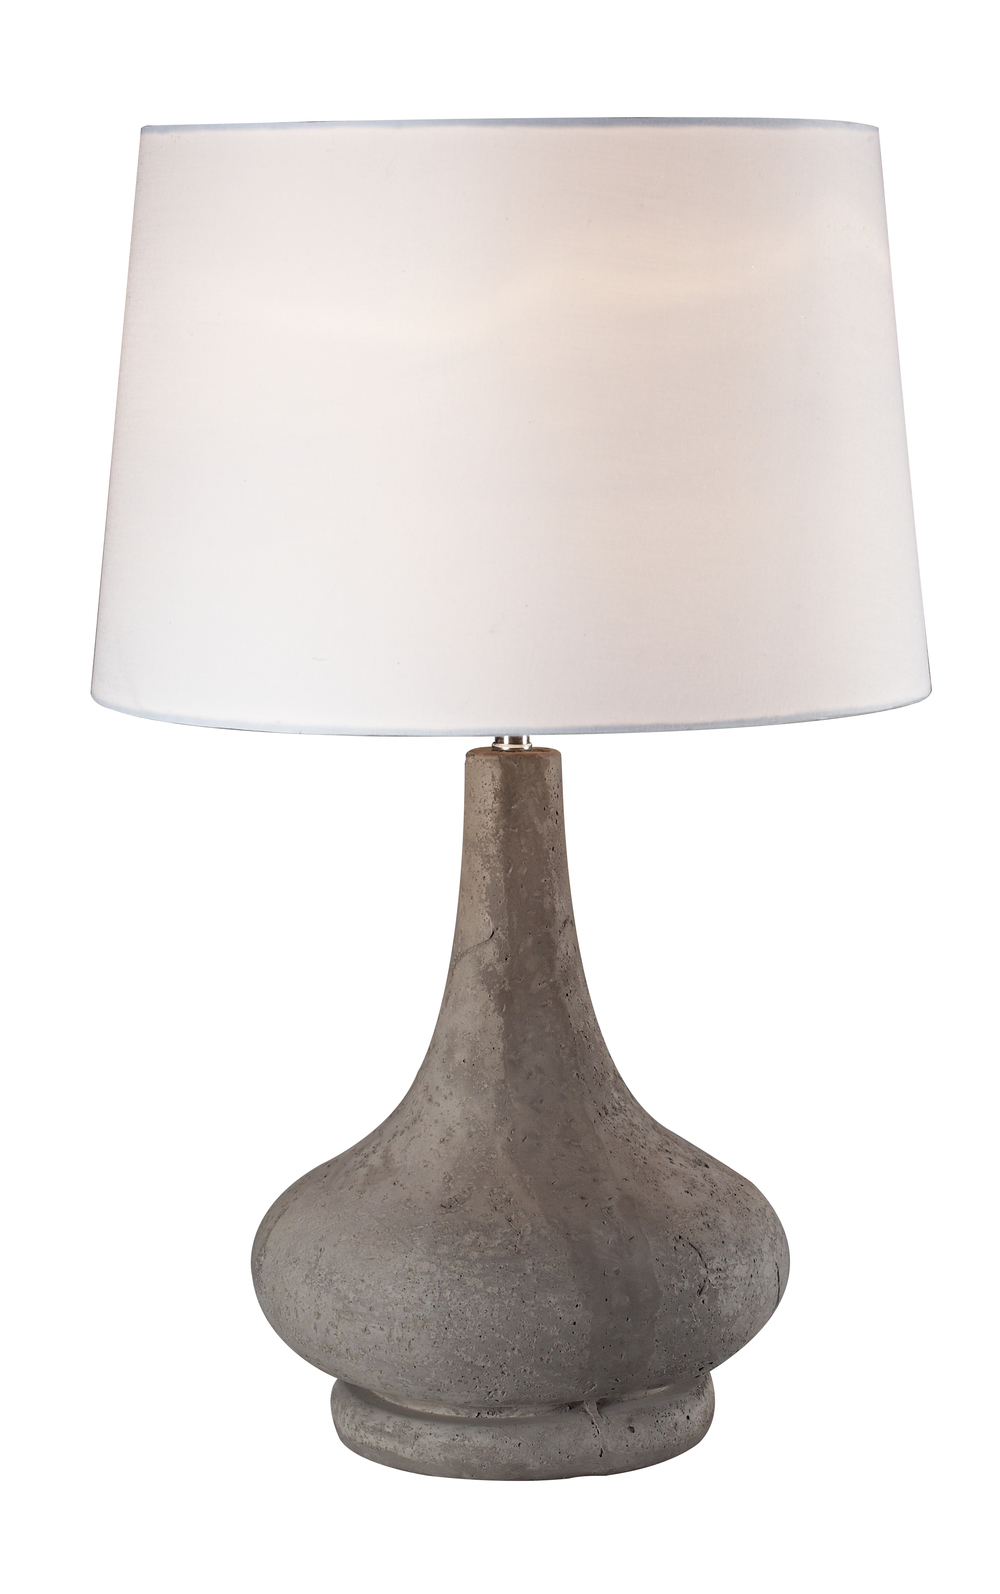 10010 | KONCRETE TABLE LAMP